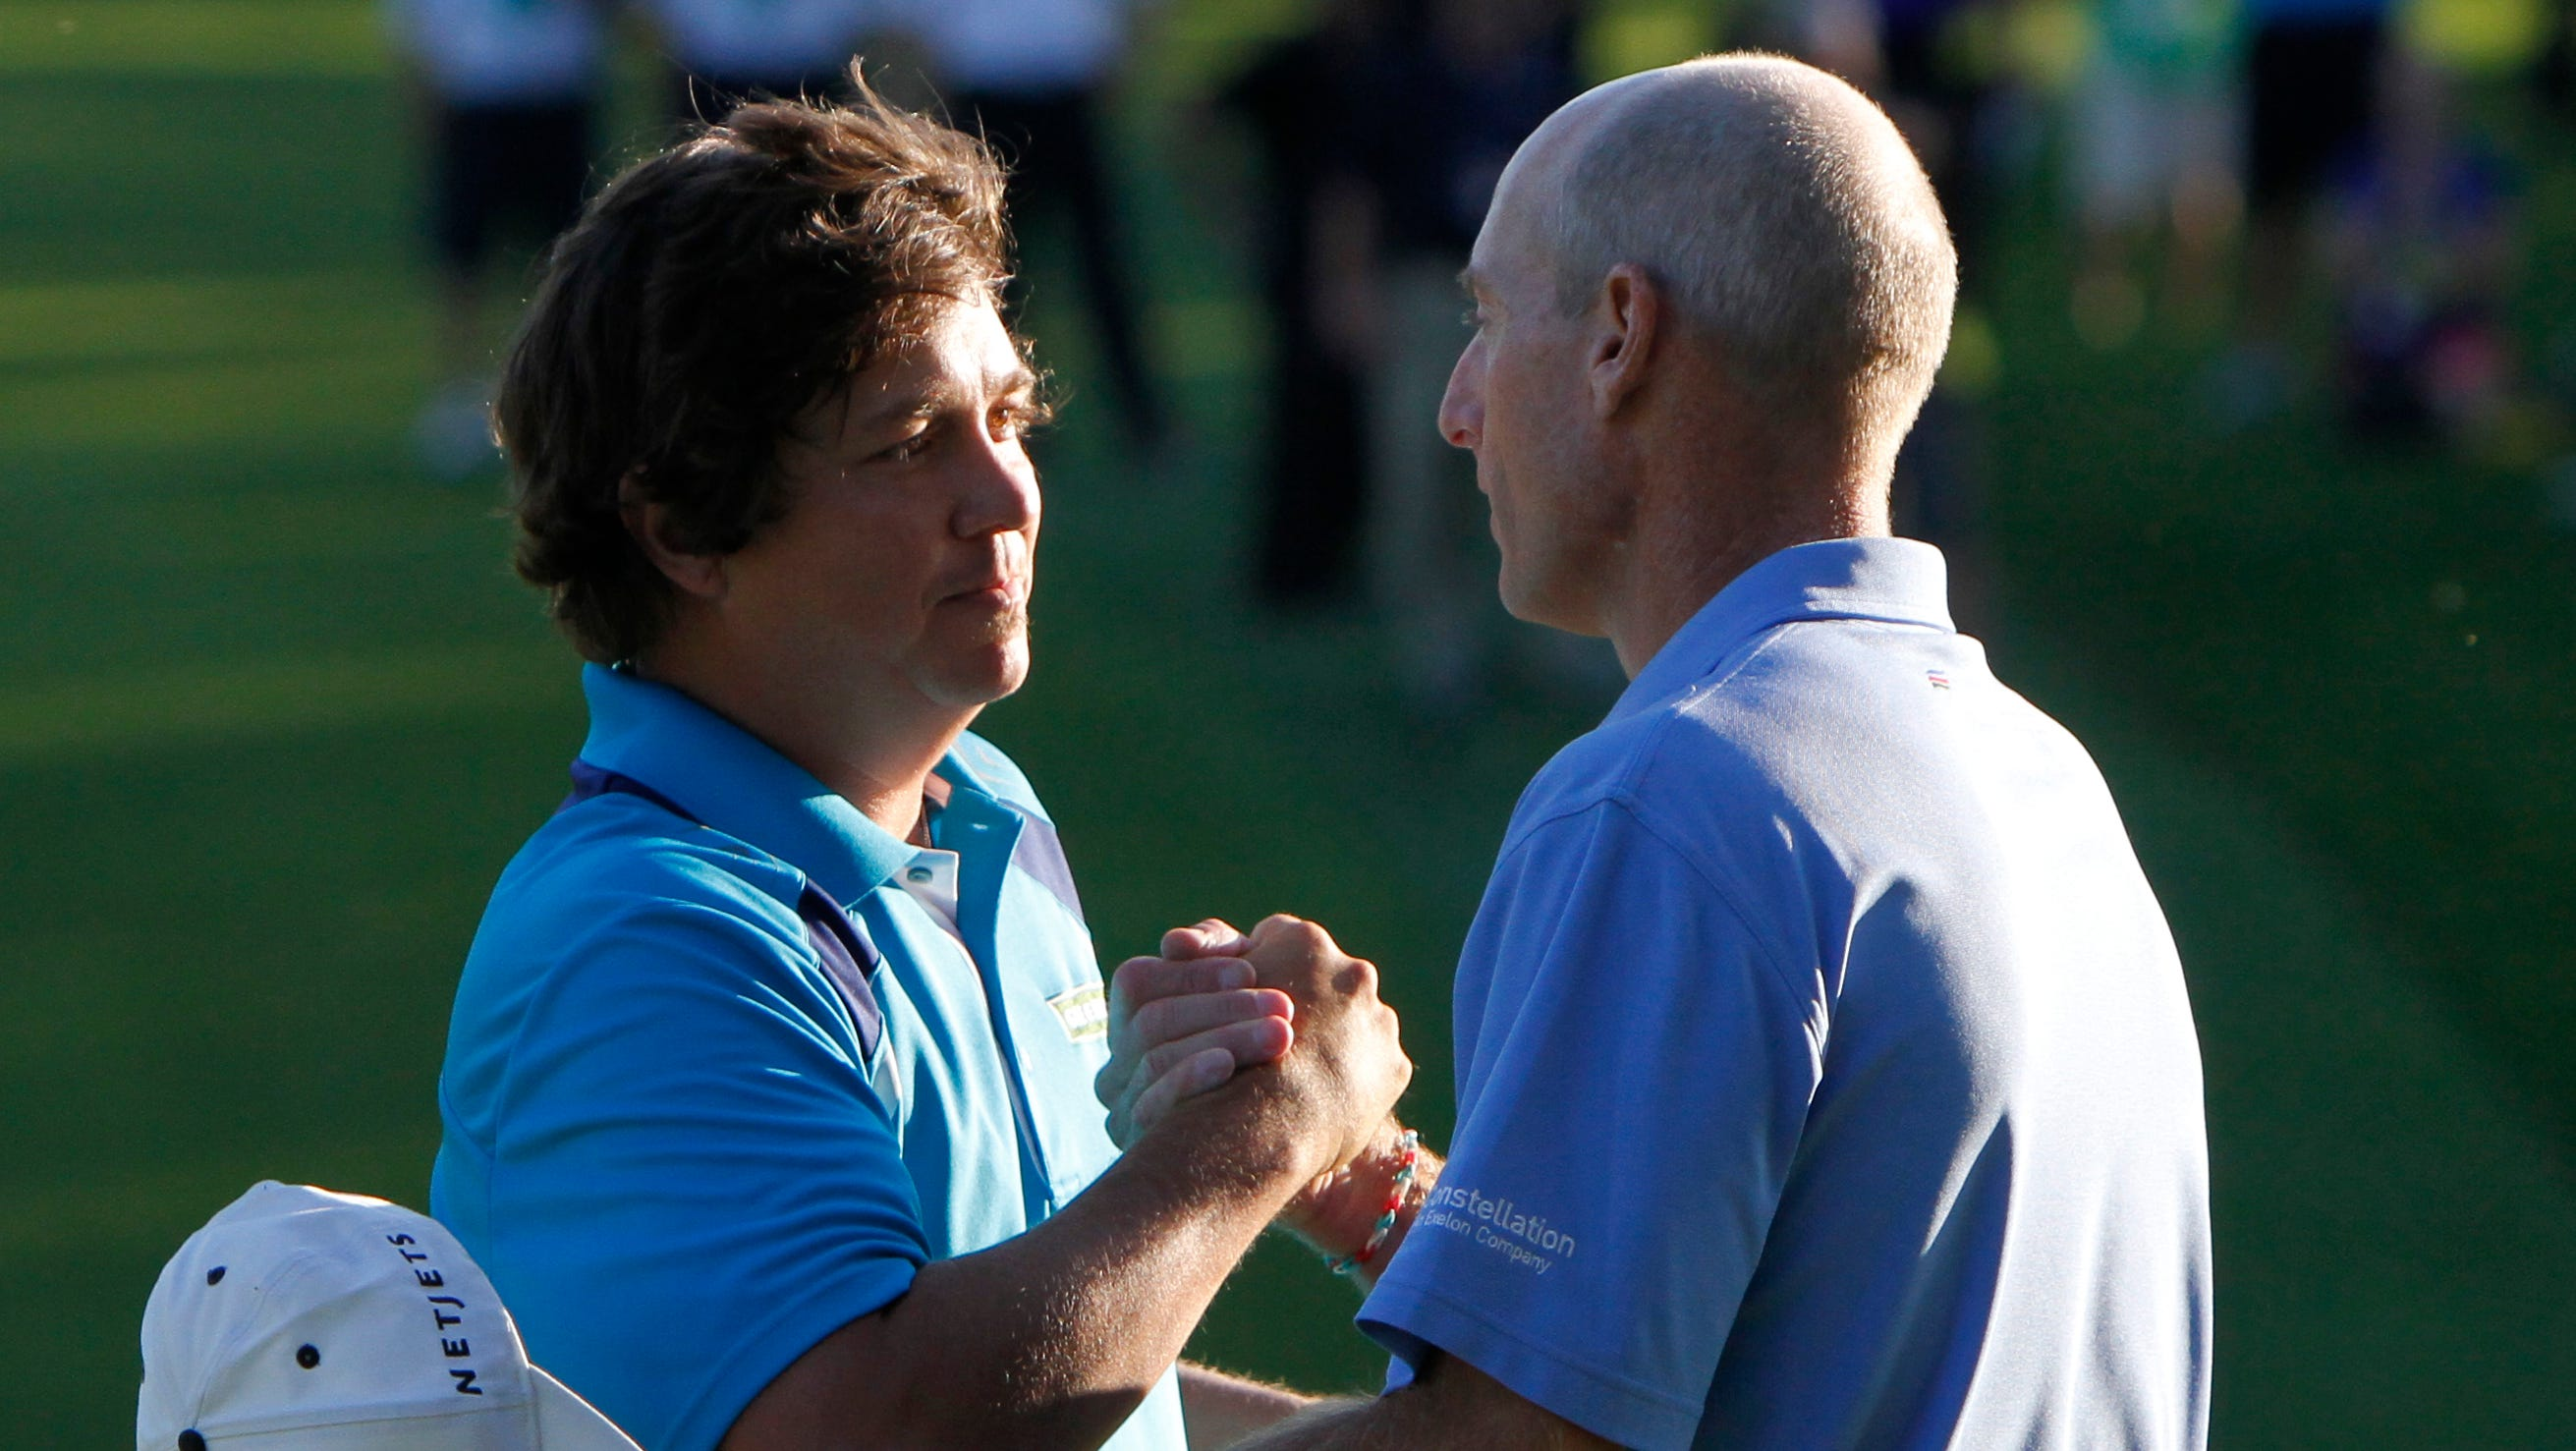 Jason Dufner shakes hands with Jim Furyk after wining  the 95th PGA Championship at Oak Hill in Pittsford, NY August 11, 2013.